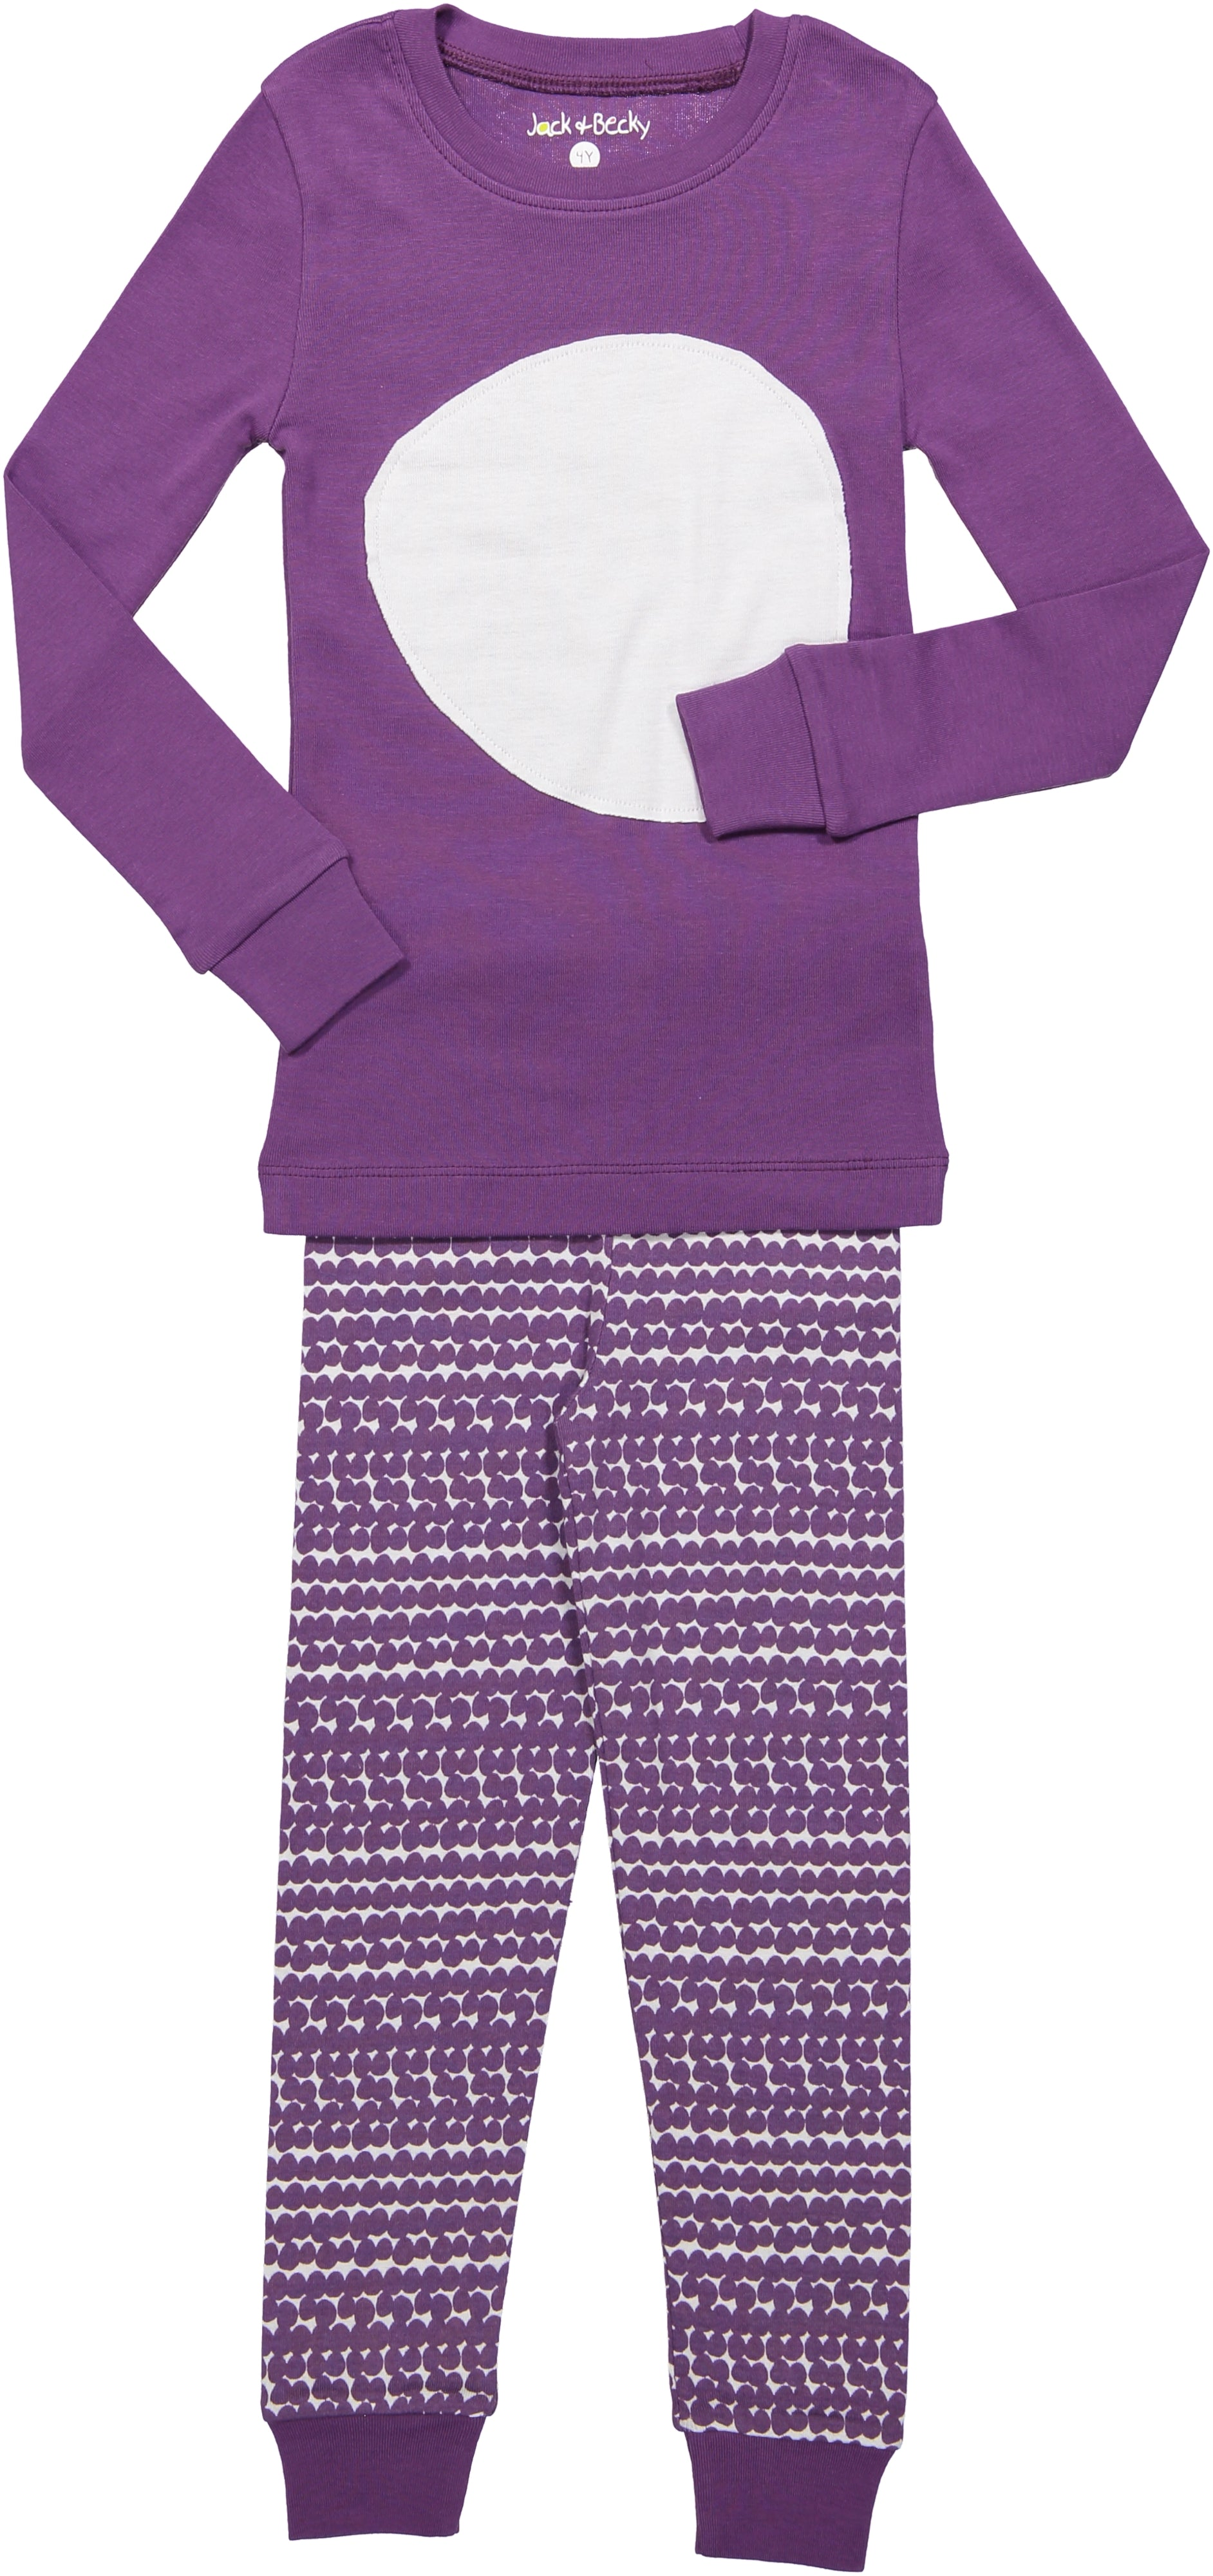 Jack and Becky Lilac Pajamas With Lilac Circle Print